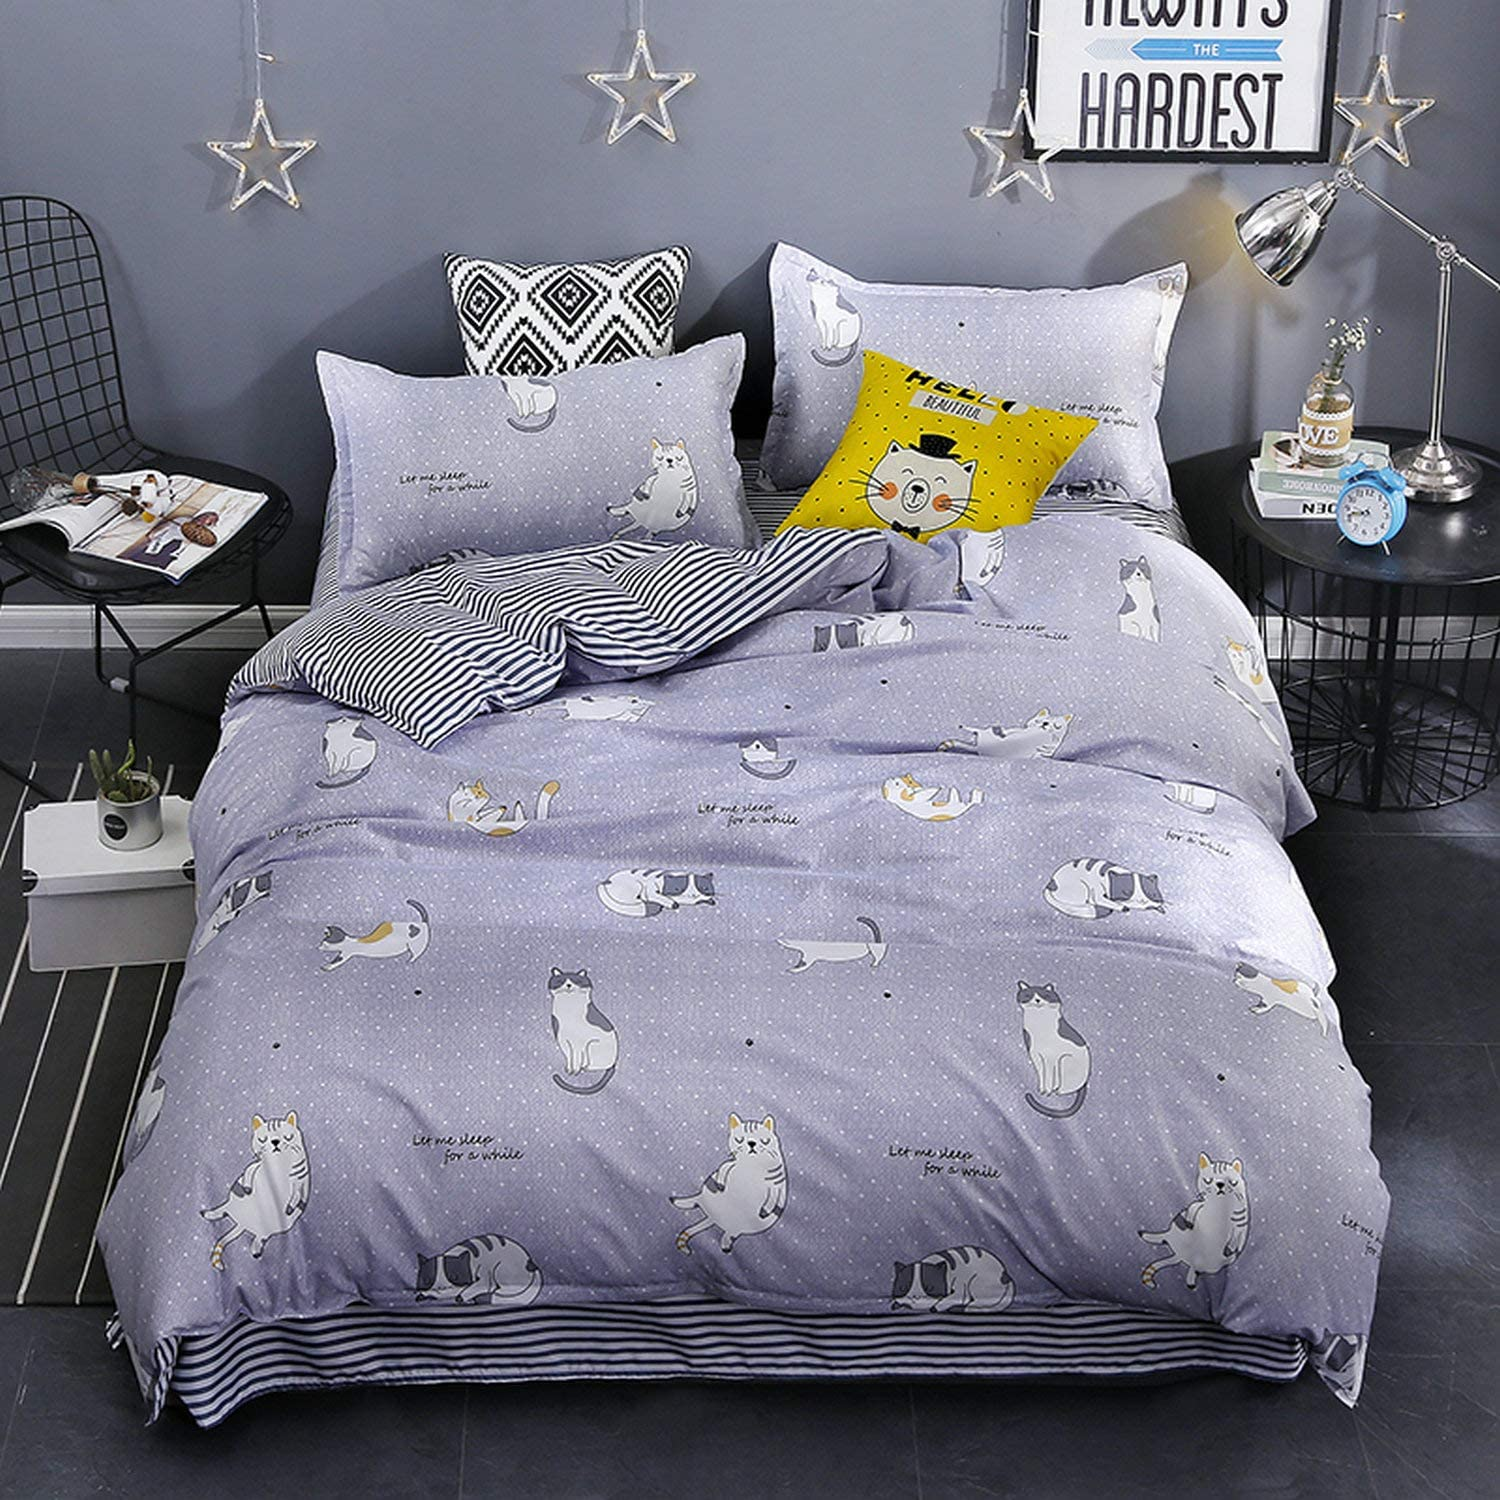 "KFZ Lucky Cat Print Grey Duvet Cover Full Set [3pcs Kids Bedding with 80""x86"" Duvet Cover Without Comforter Insert, 2 Pillow Cases Standard Size] Animal Themed Soft Hypoallergenic Microfiber Bed Set"